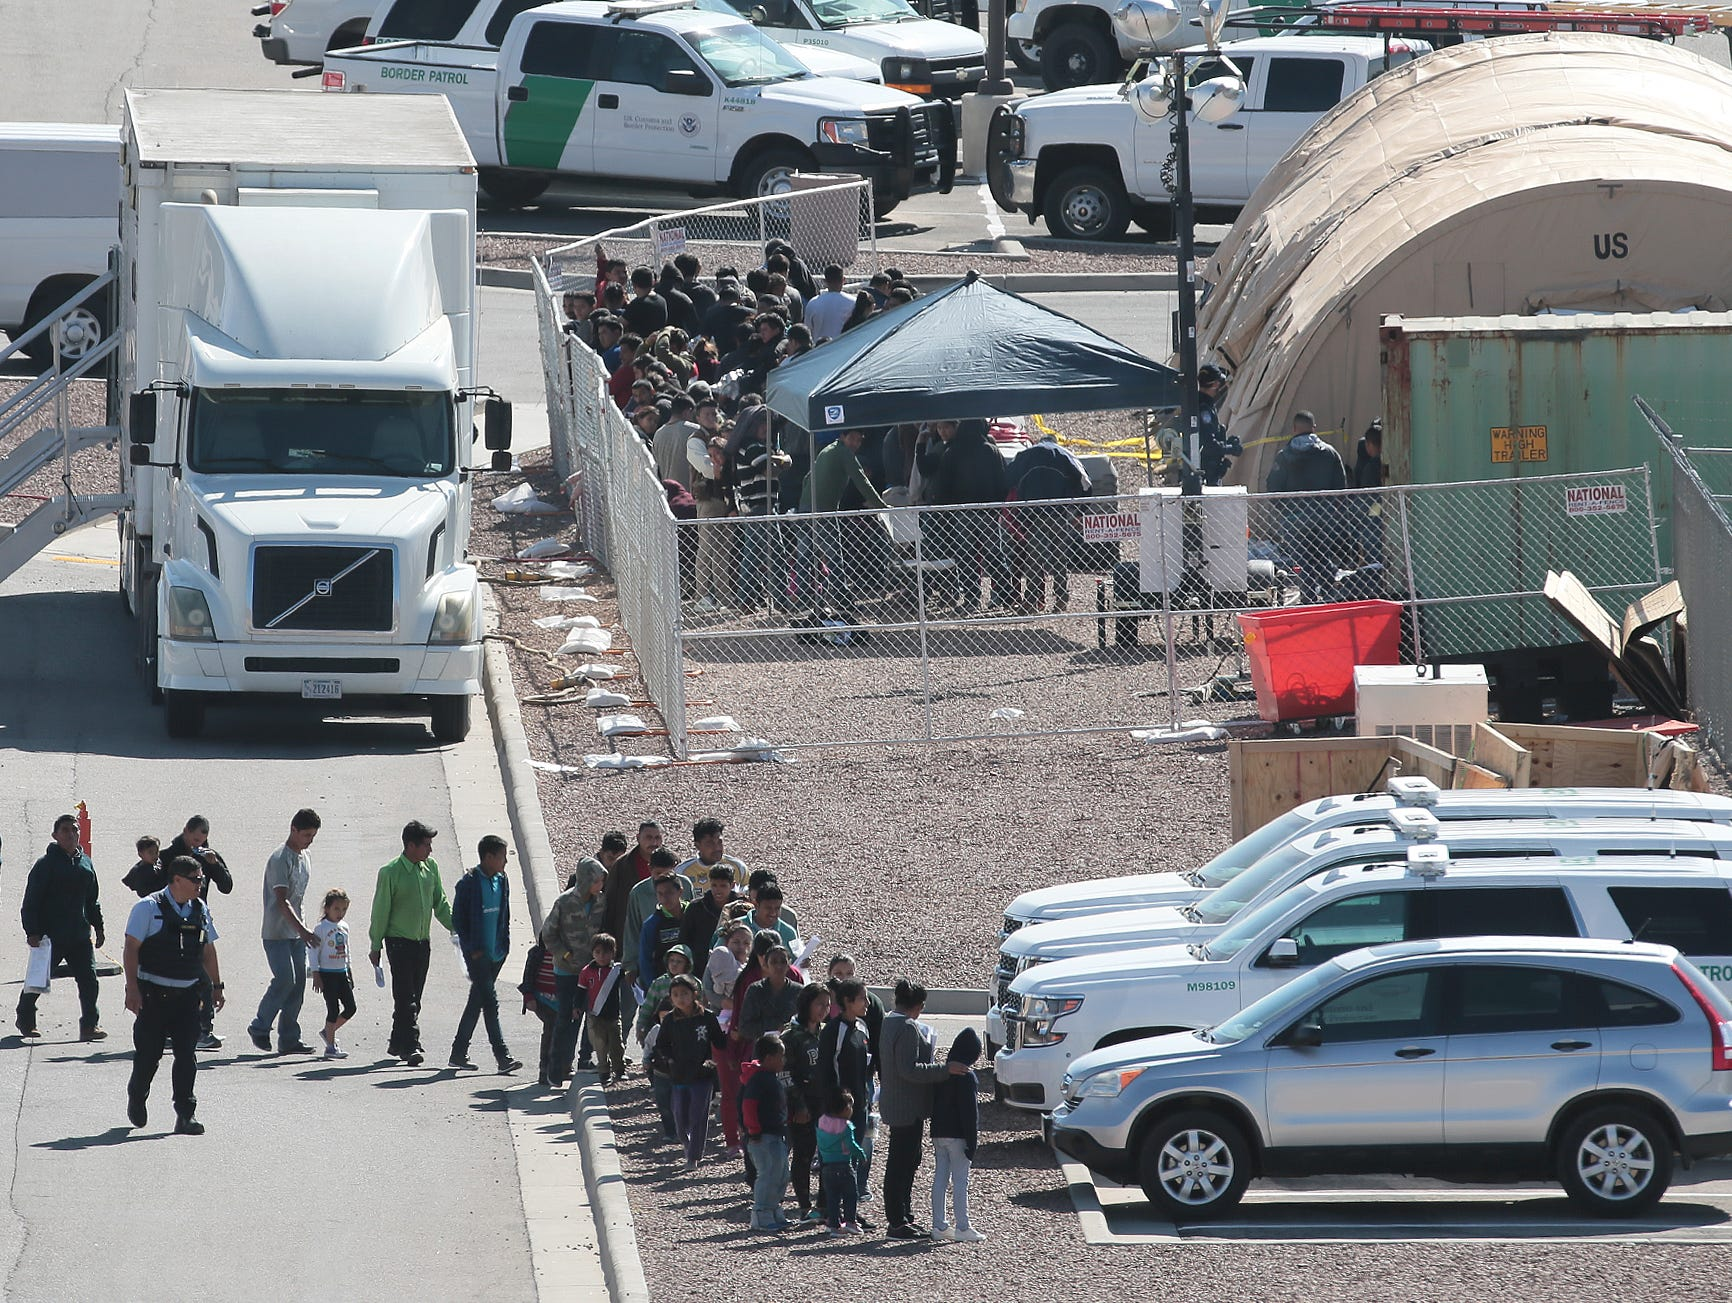 Migrants are moved through the Border Patrol Facility at Hondo Pass and US54 Wednesday. Tents are being constructed at the site.